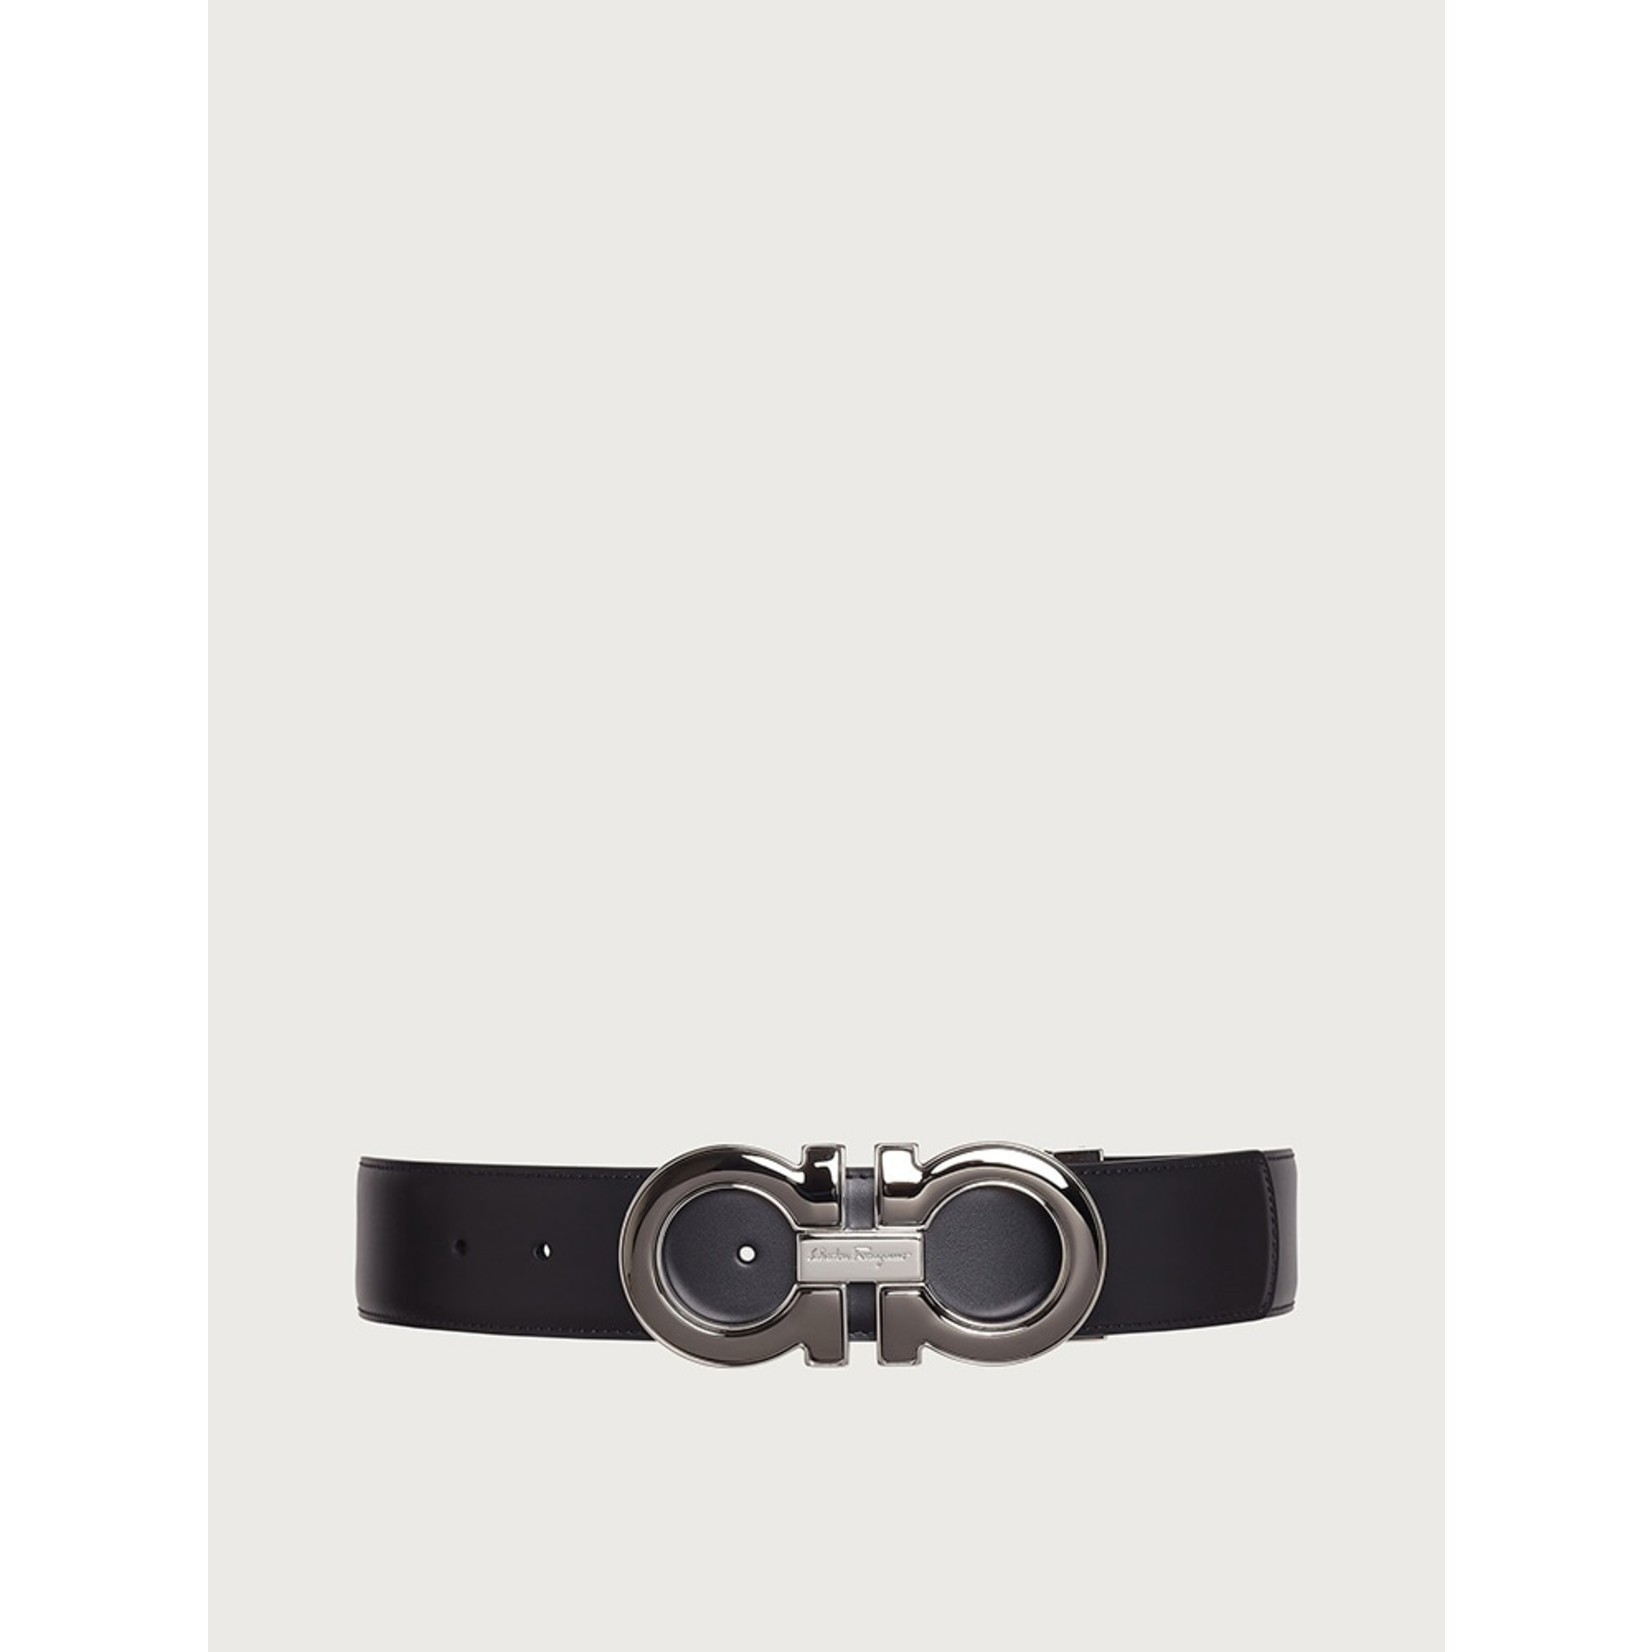 SALVATORE FERRAGAMO SALVATORE FERRAGAMO - REVERSIBLE GANCINI BELT - BLACK/HICKORY - 645904